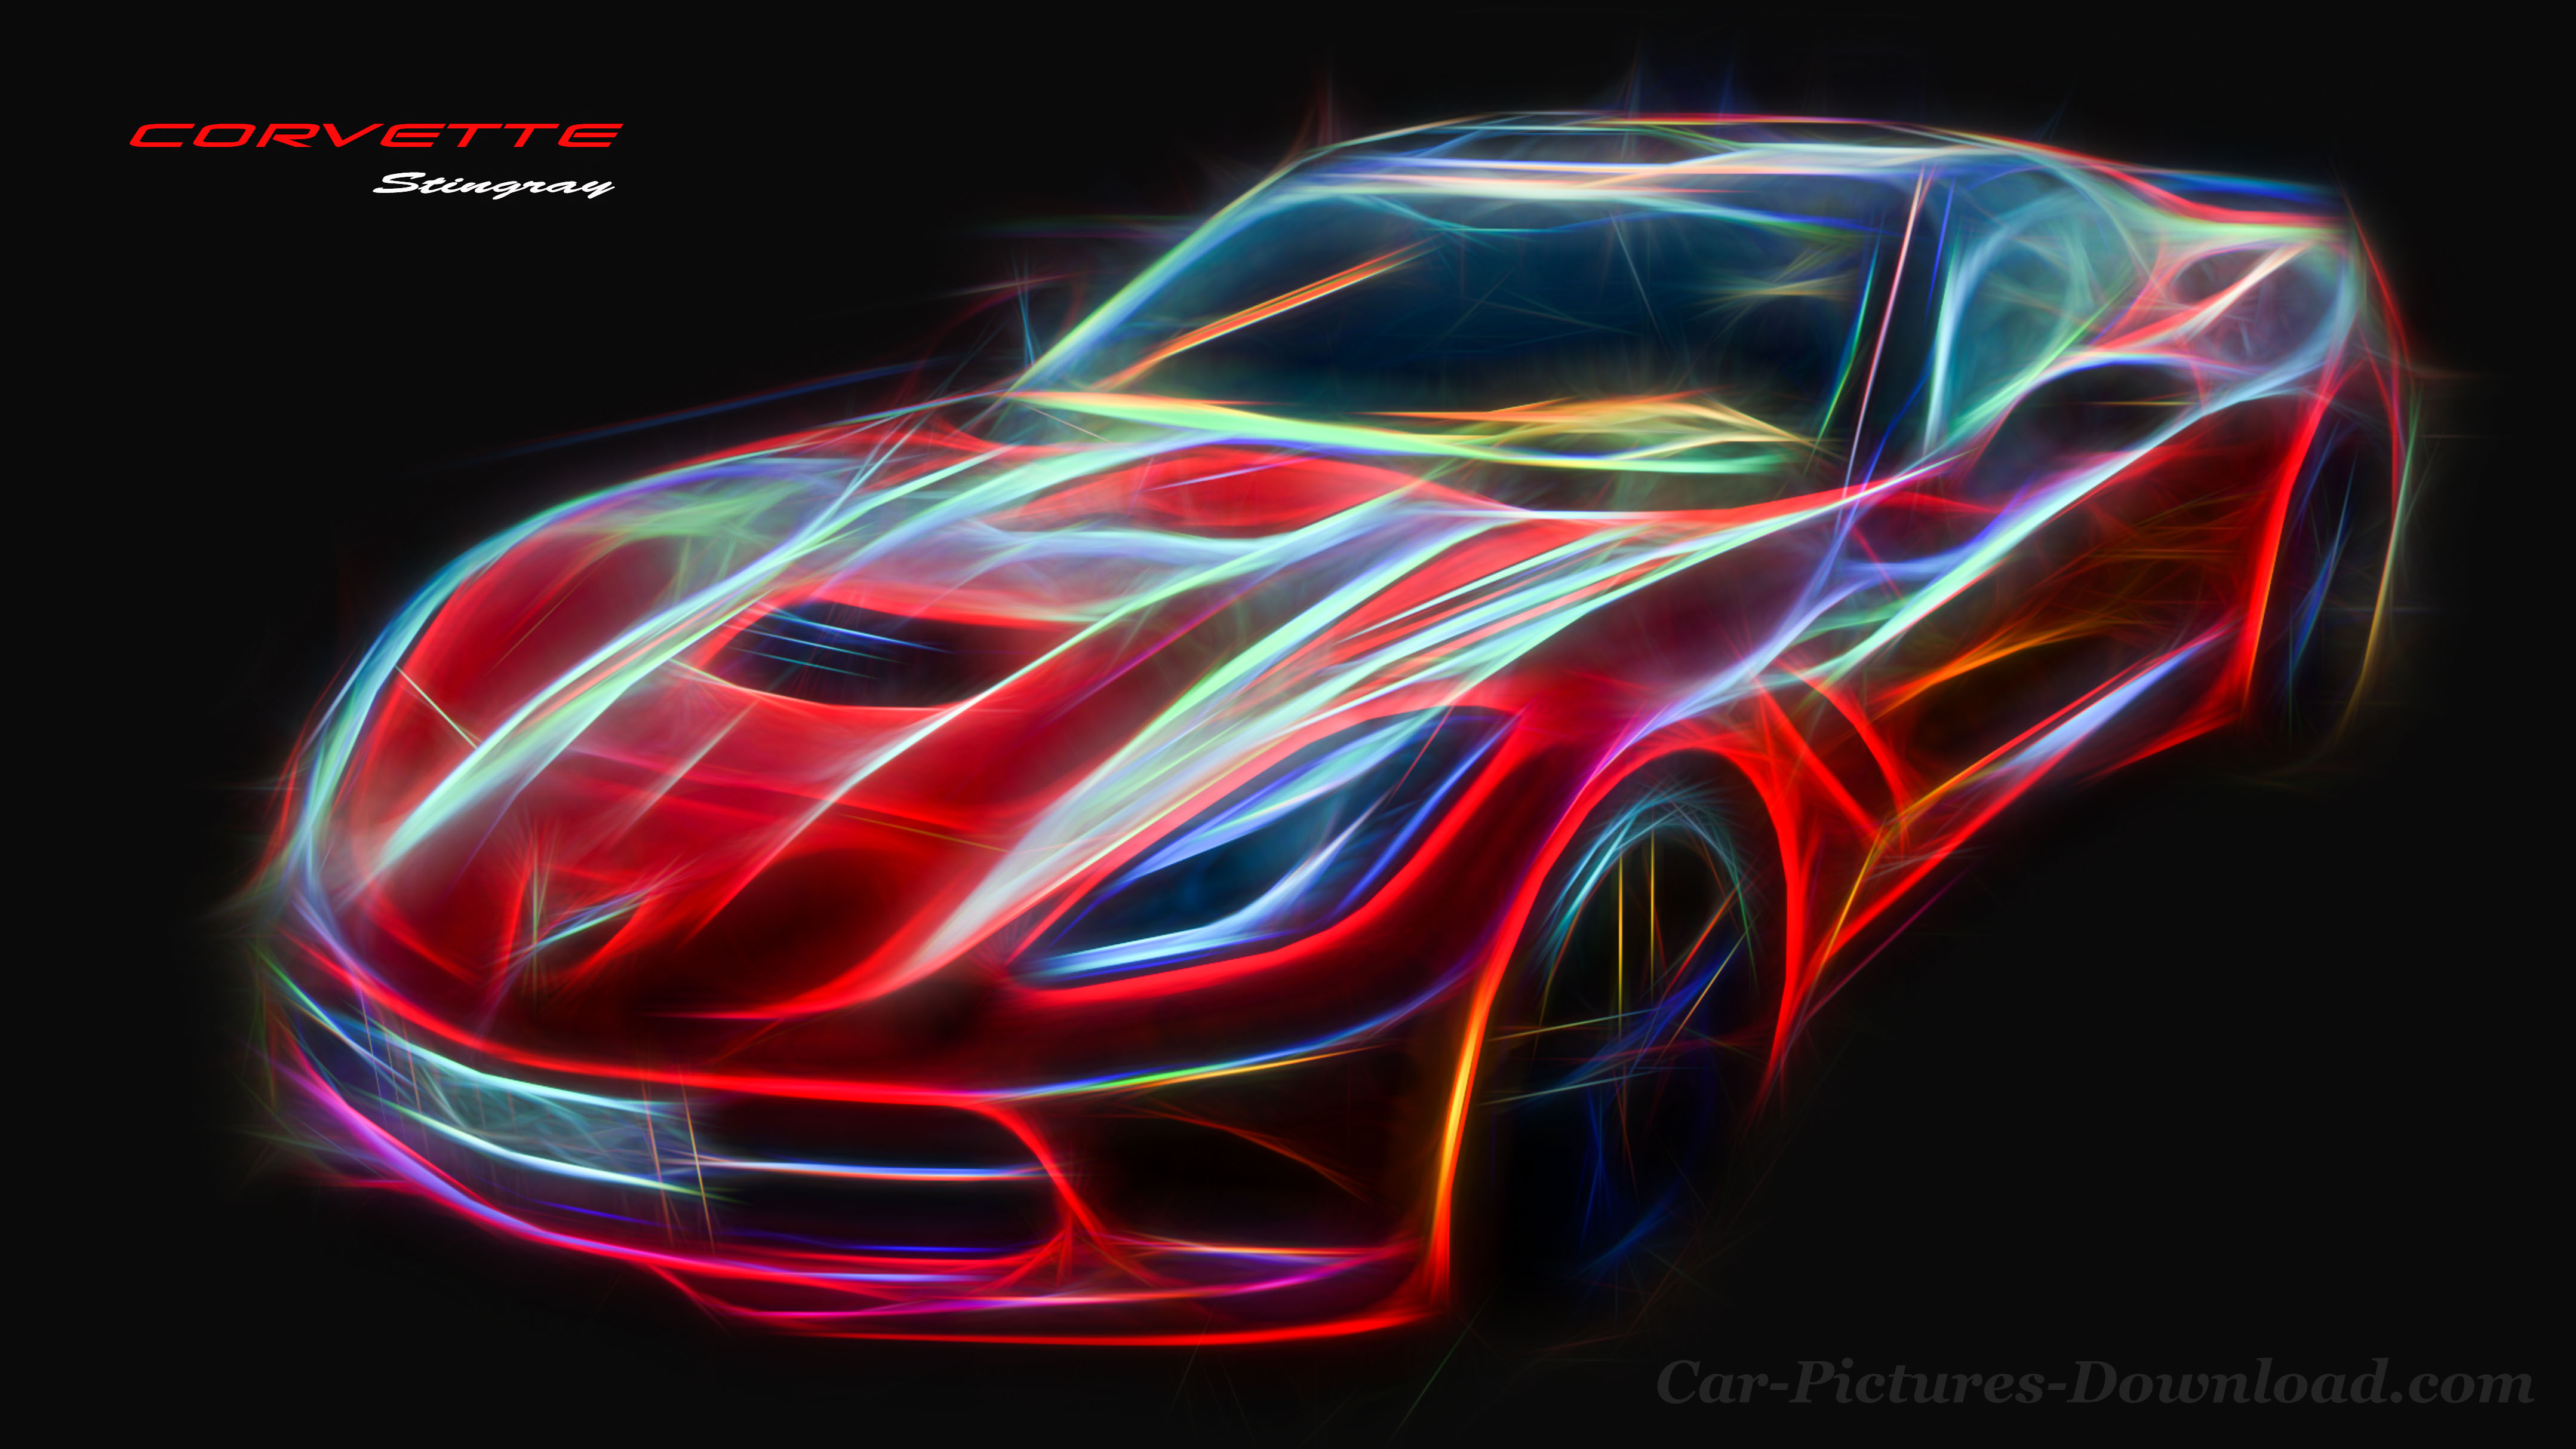 Free Download Corvette Wallpapers For All Devices Best Quality And To 4314x2426 For Your Desktop Mobile Tablet Explore 58 Wallpapers Sport Cars Muscle Car Wallpaper Sports Cars Wallpapers Hd